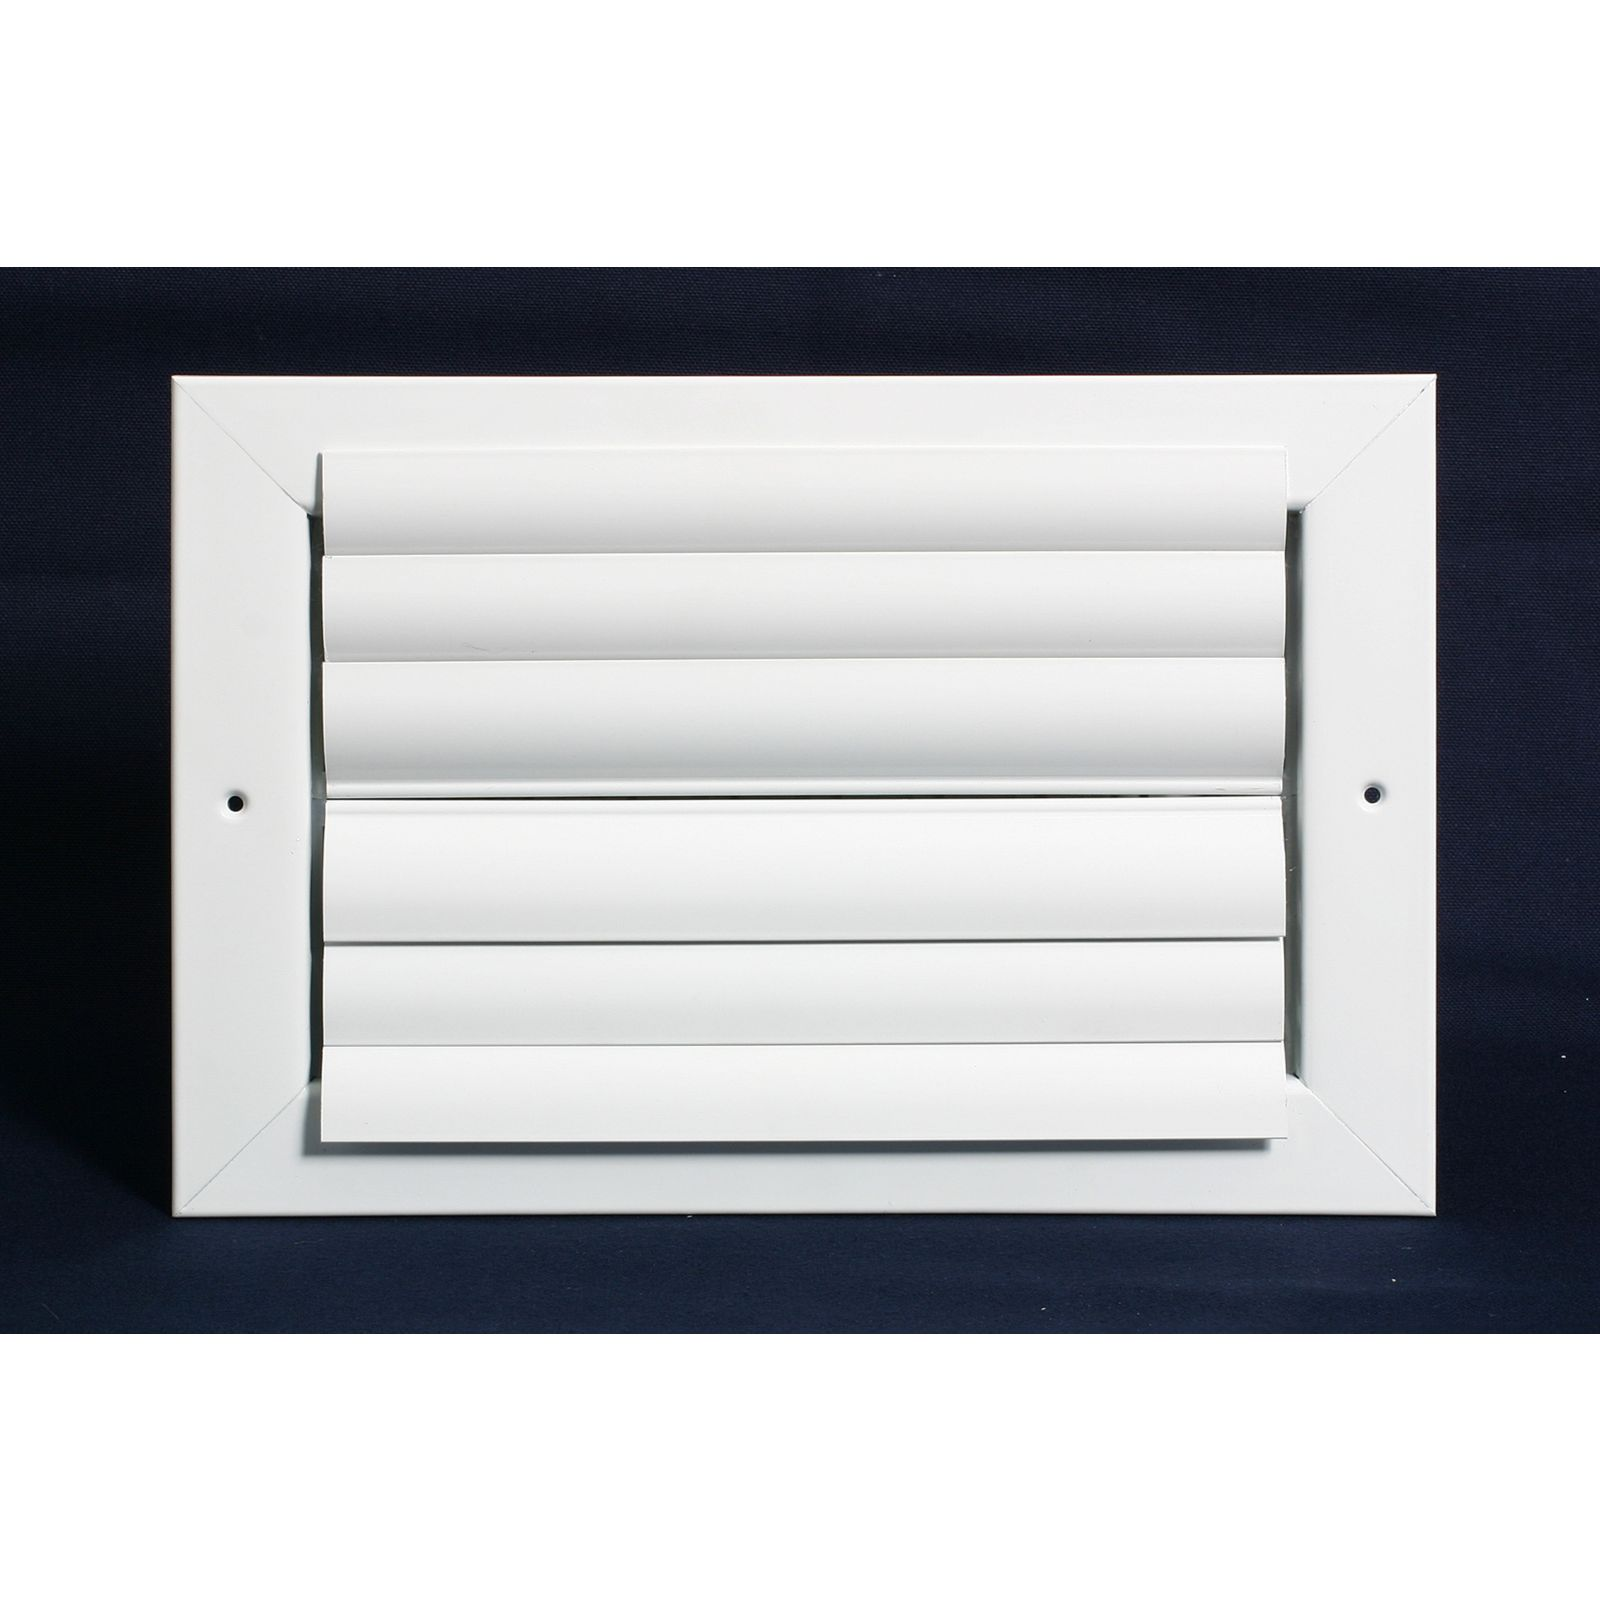 "Aluminum Ceiling 2-Way Deflection Supply, Multi-shutter 14"" X 10"" White"